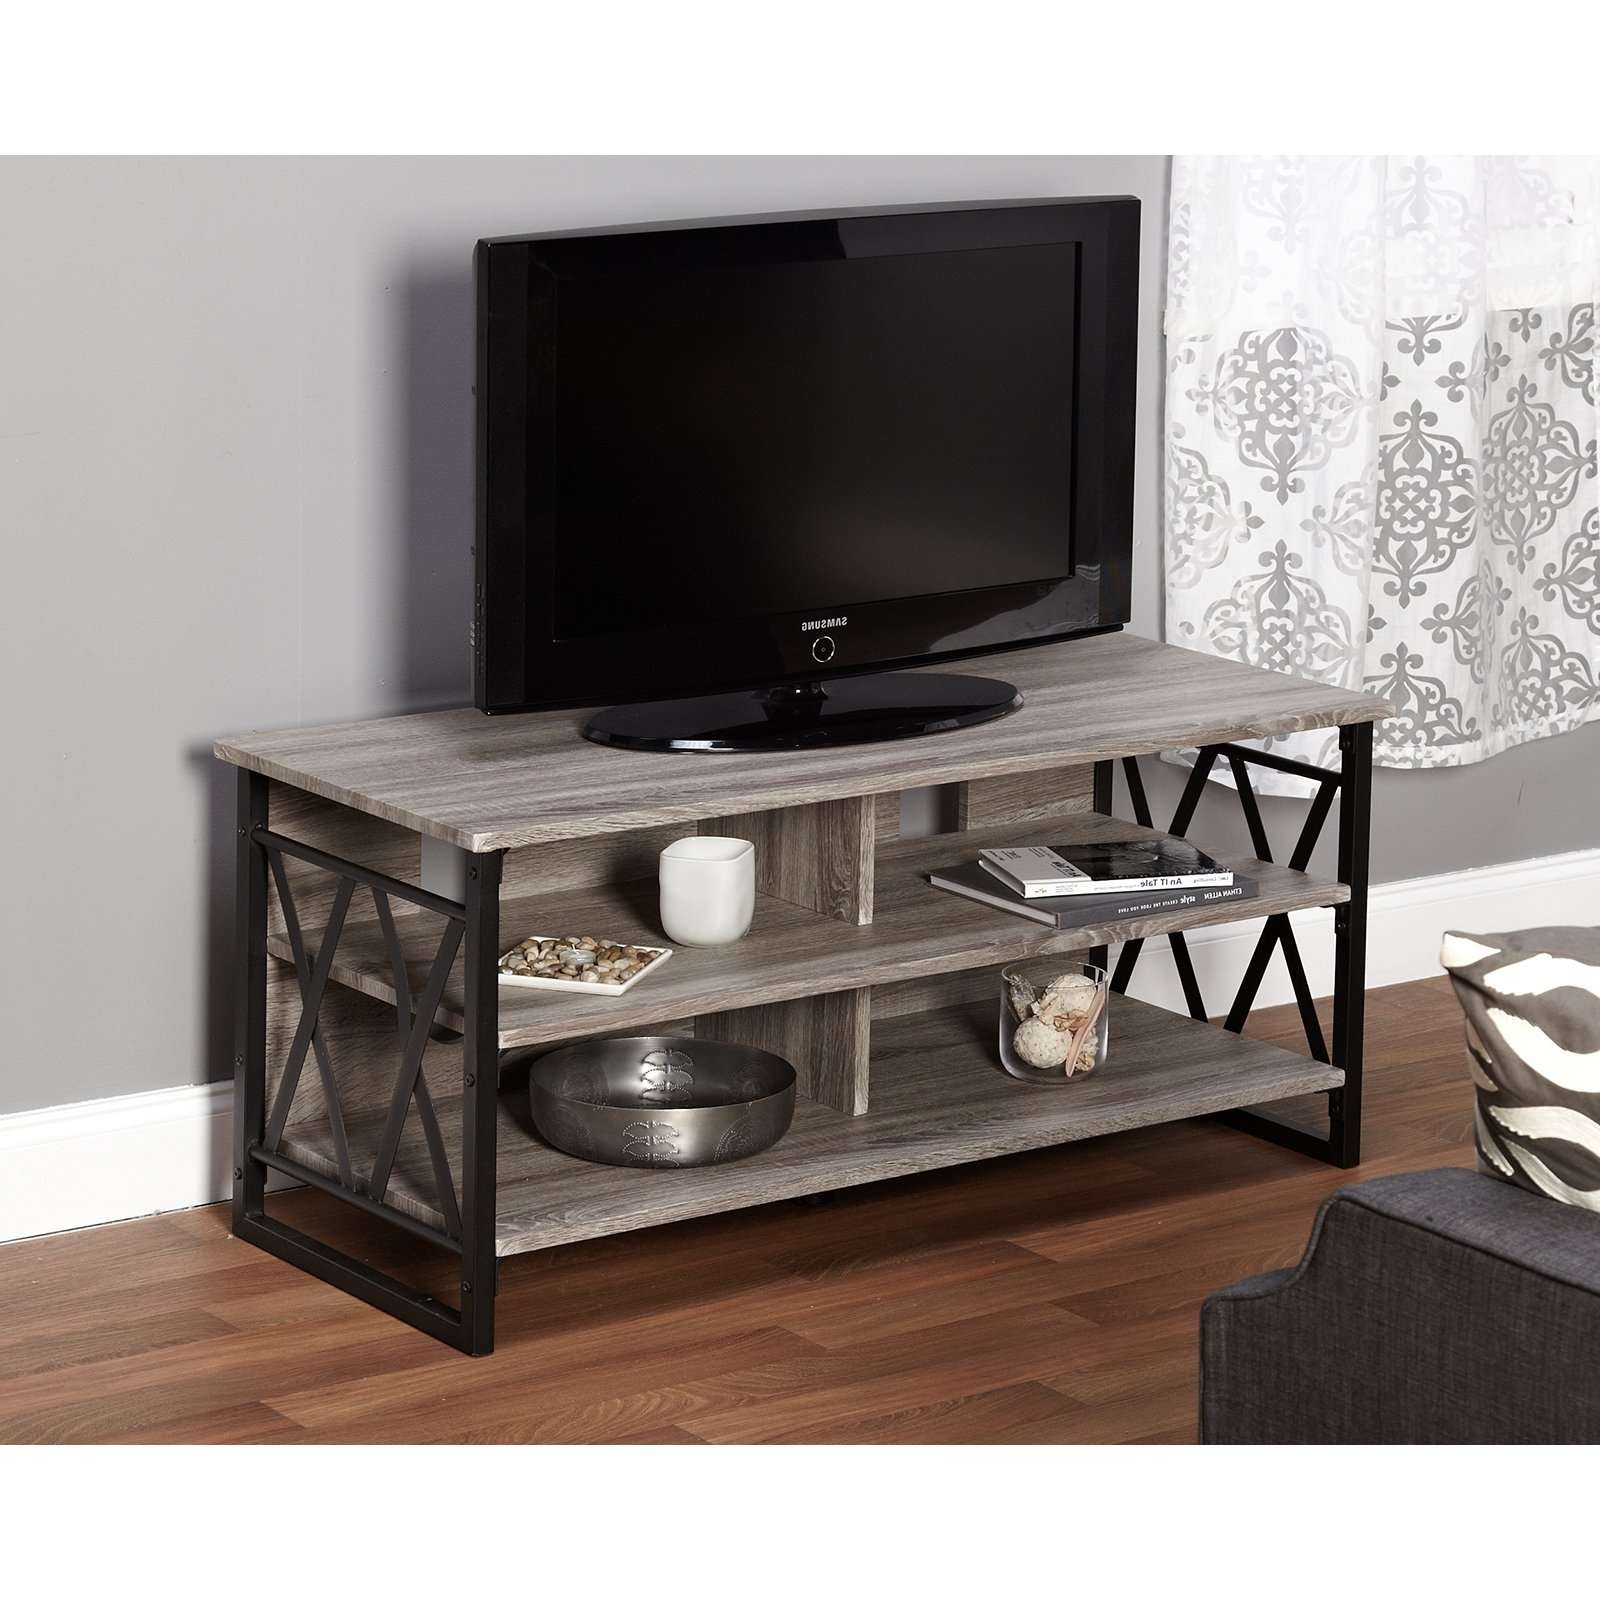 Belham Living Edison Reclaimed Wood Tv Stand | Hayneedle With Recycled Wood Tv Stands (View 2 of 15)